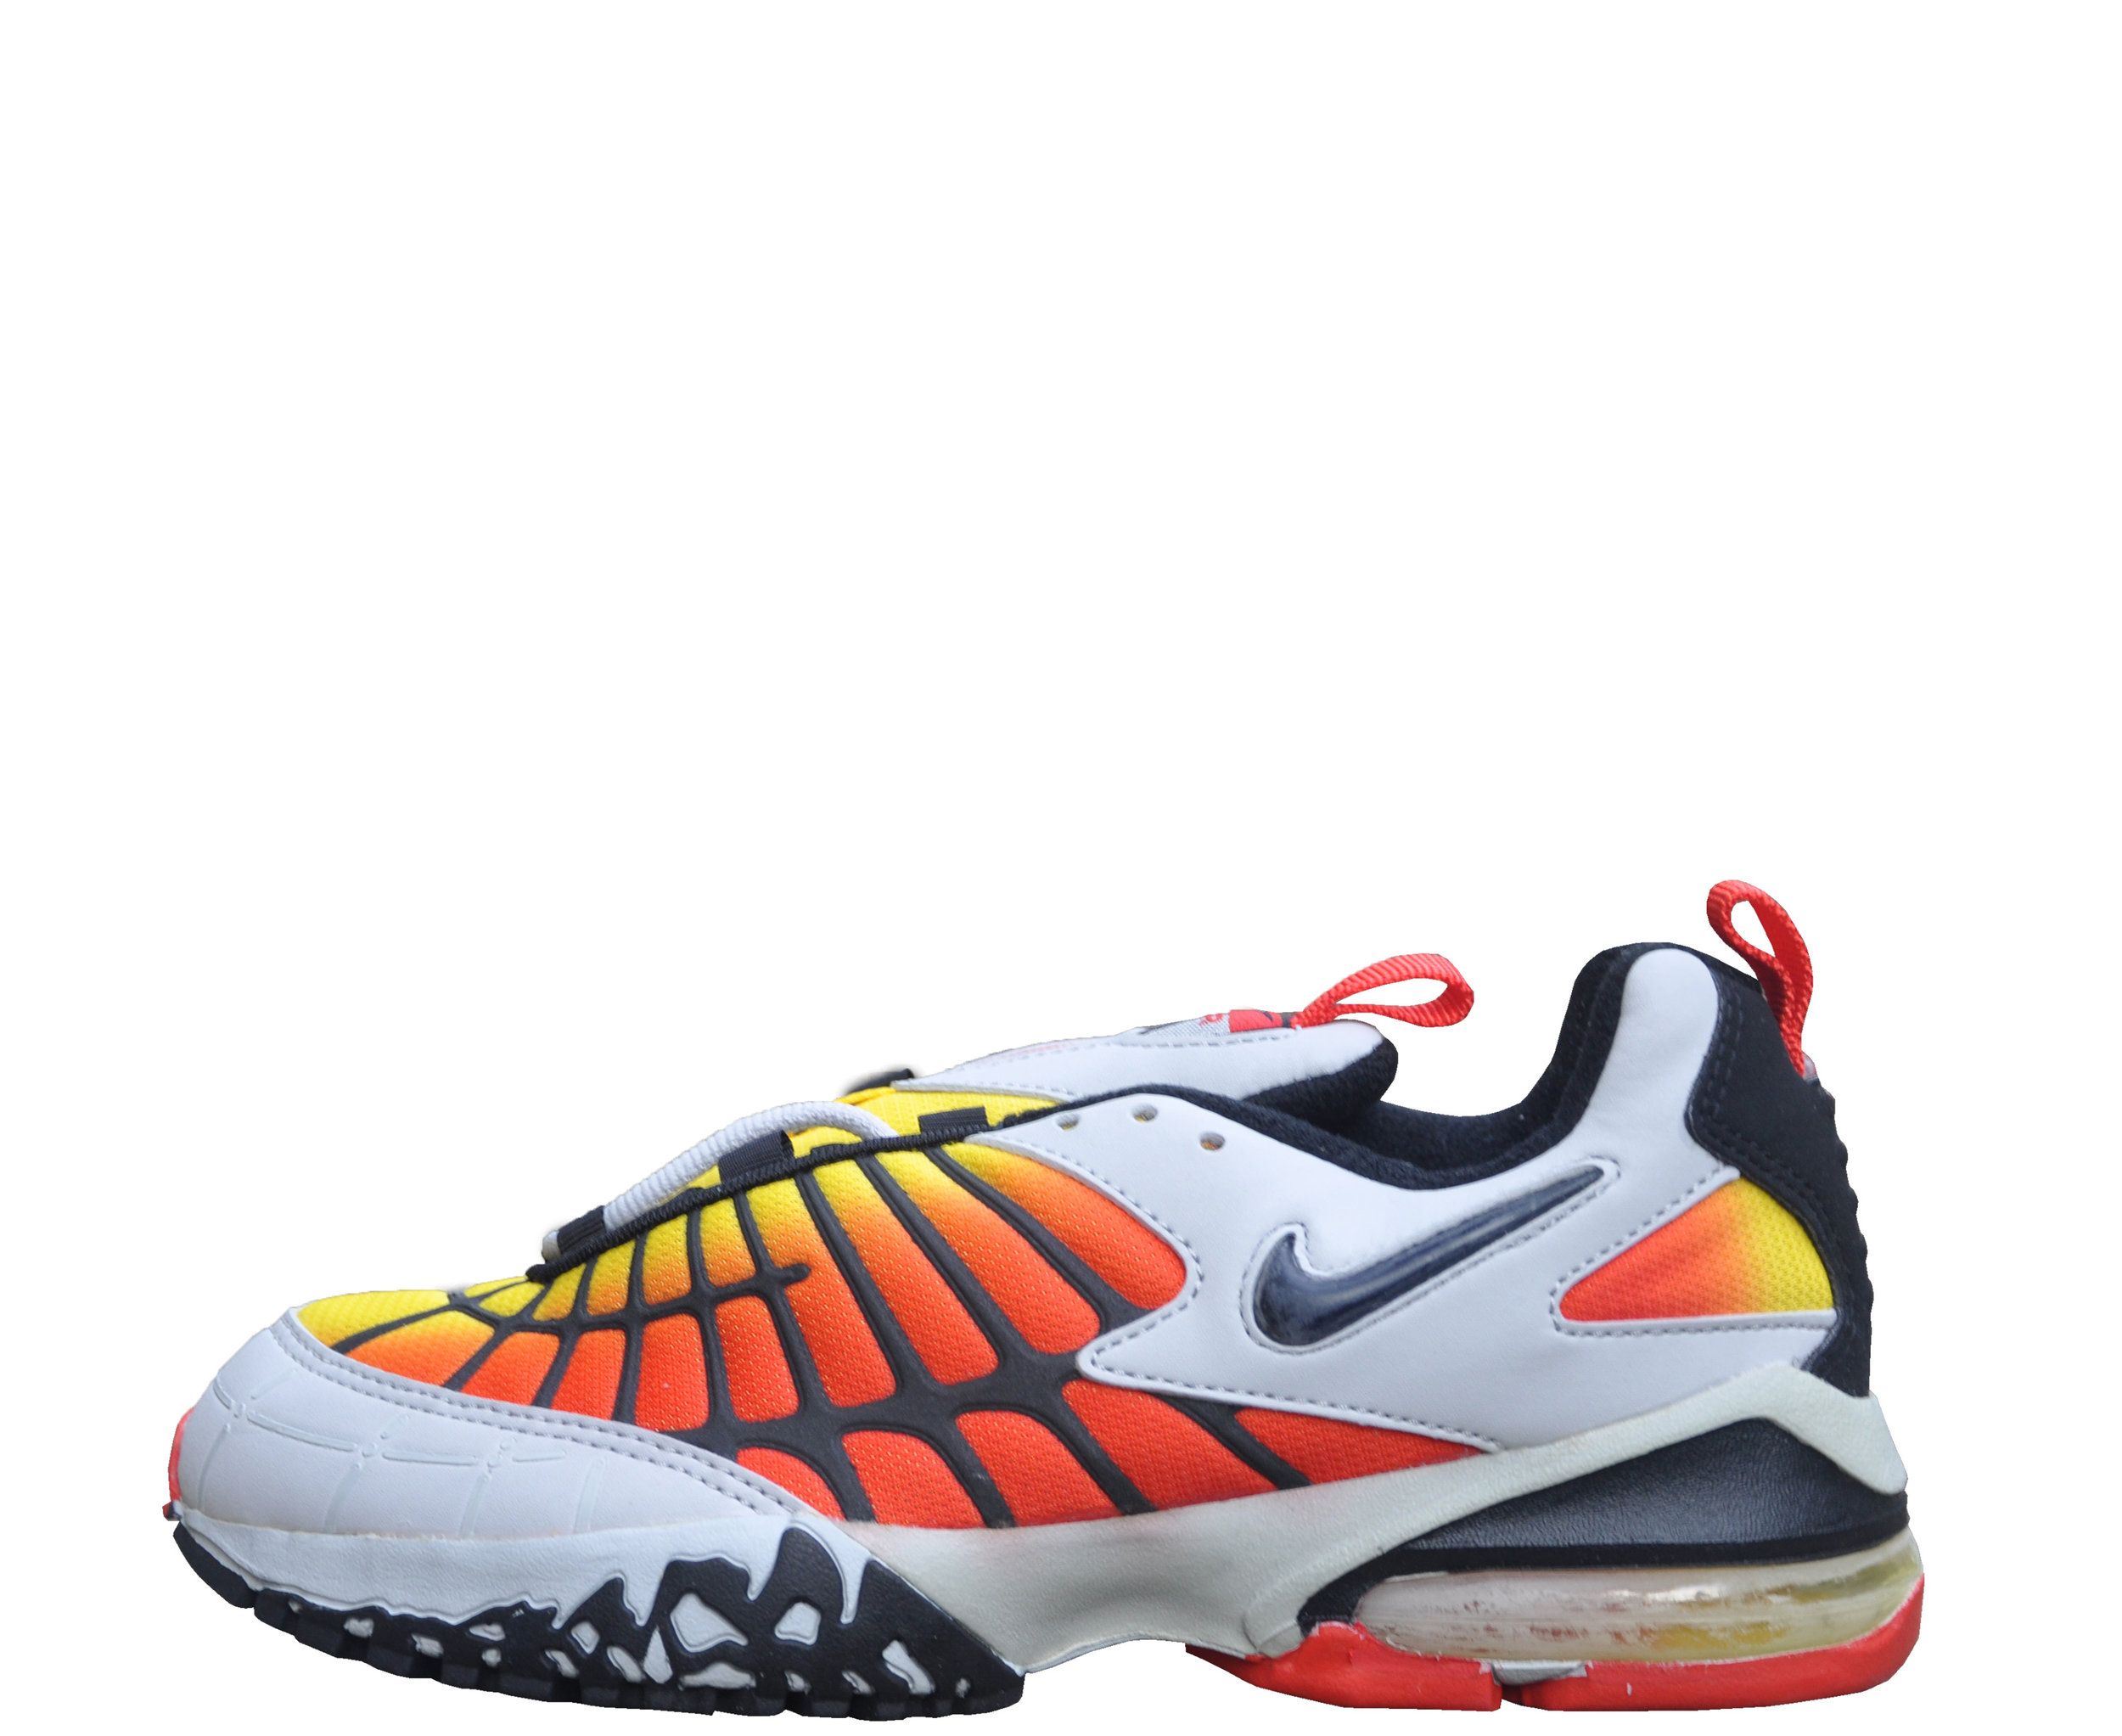 reputable site e545a d3053 Kids Nike Air Max 120 Grey / Pimento (Size 6) DS — Roots